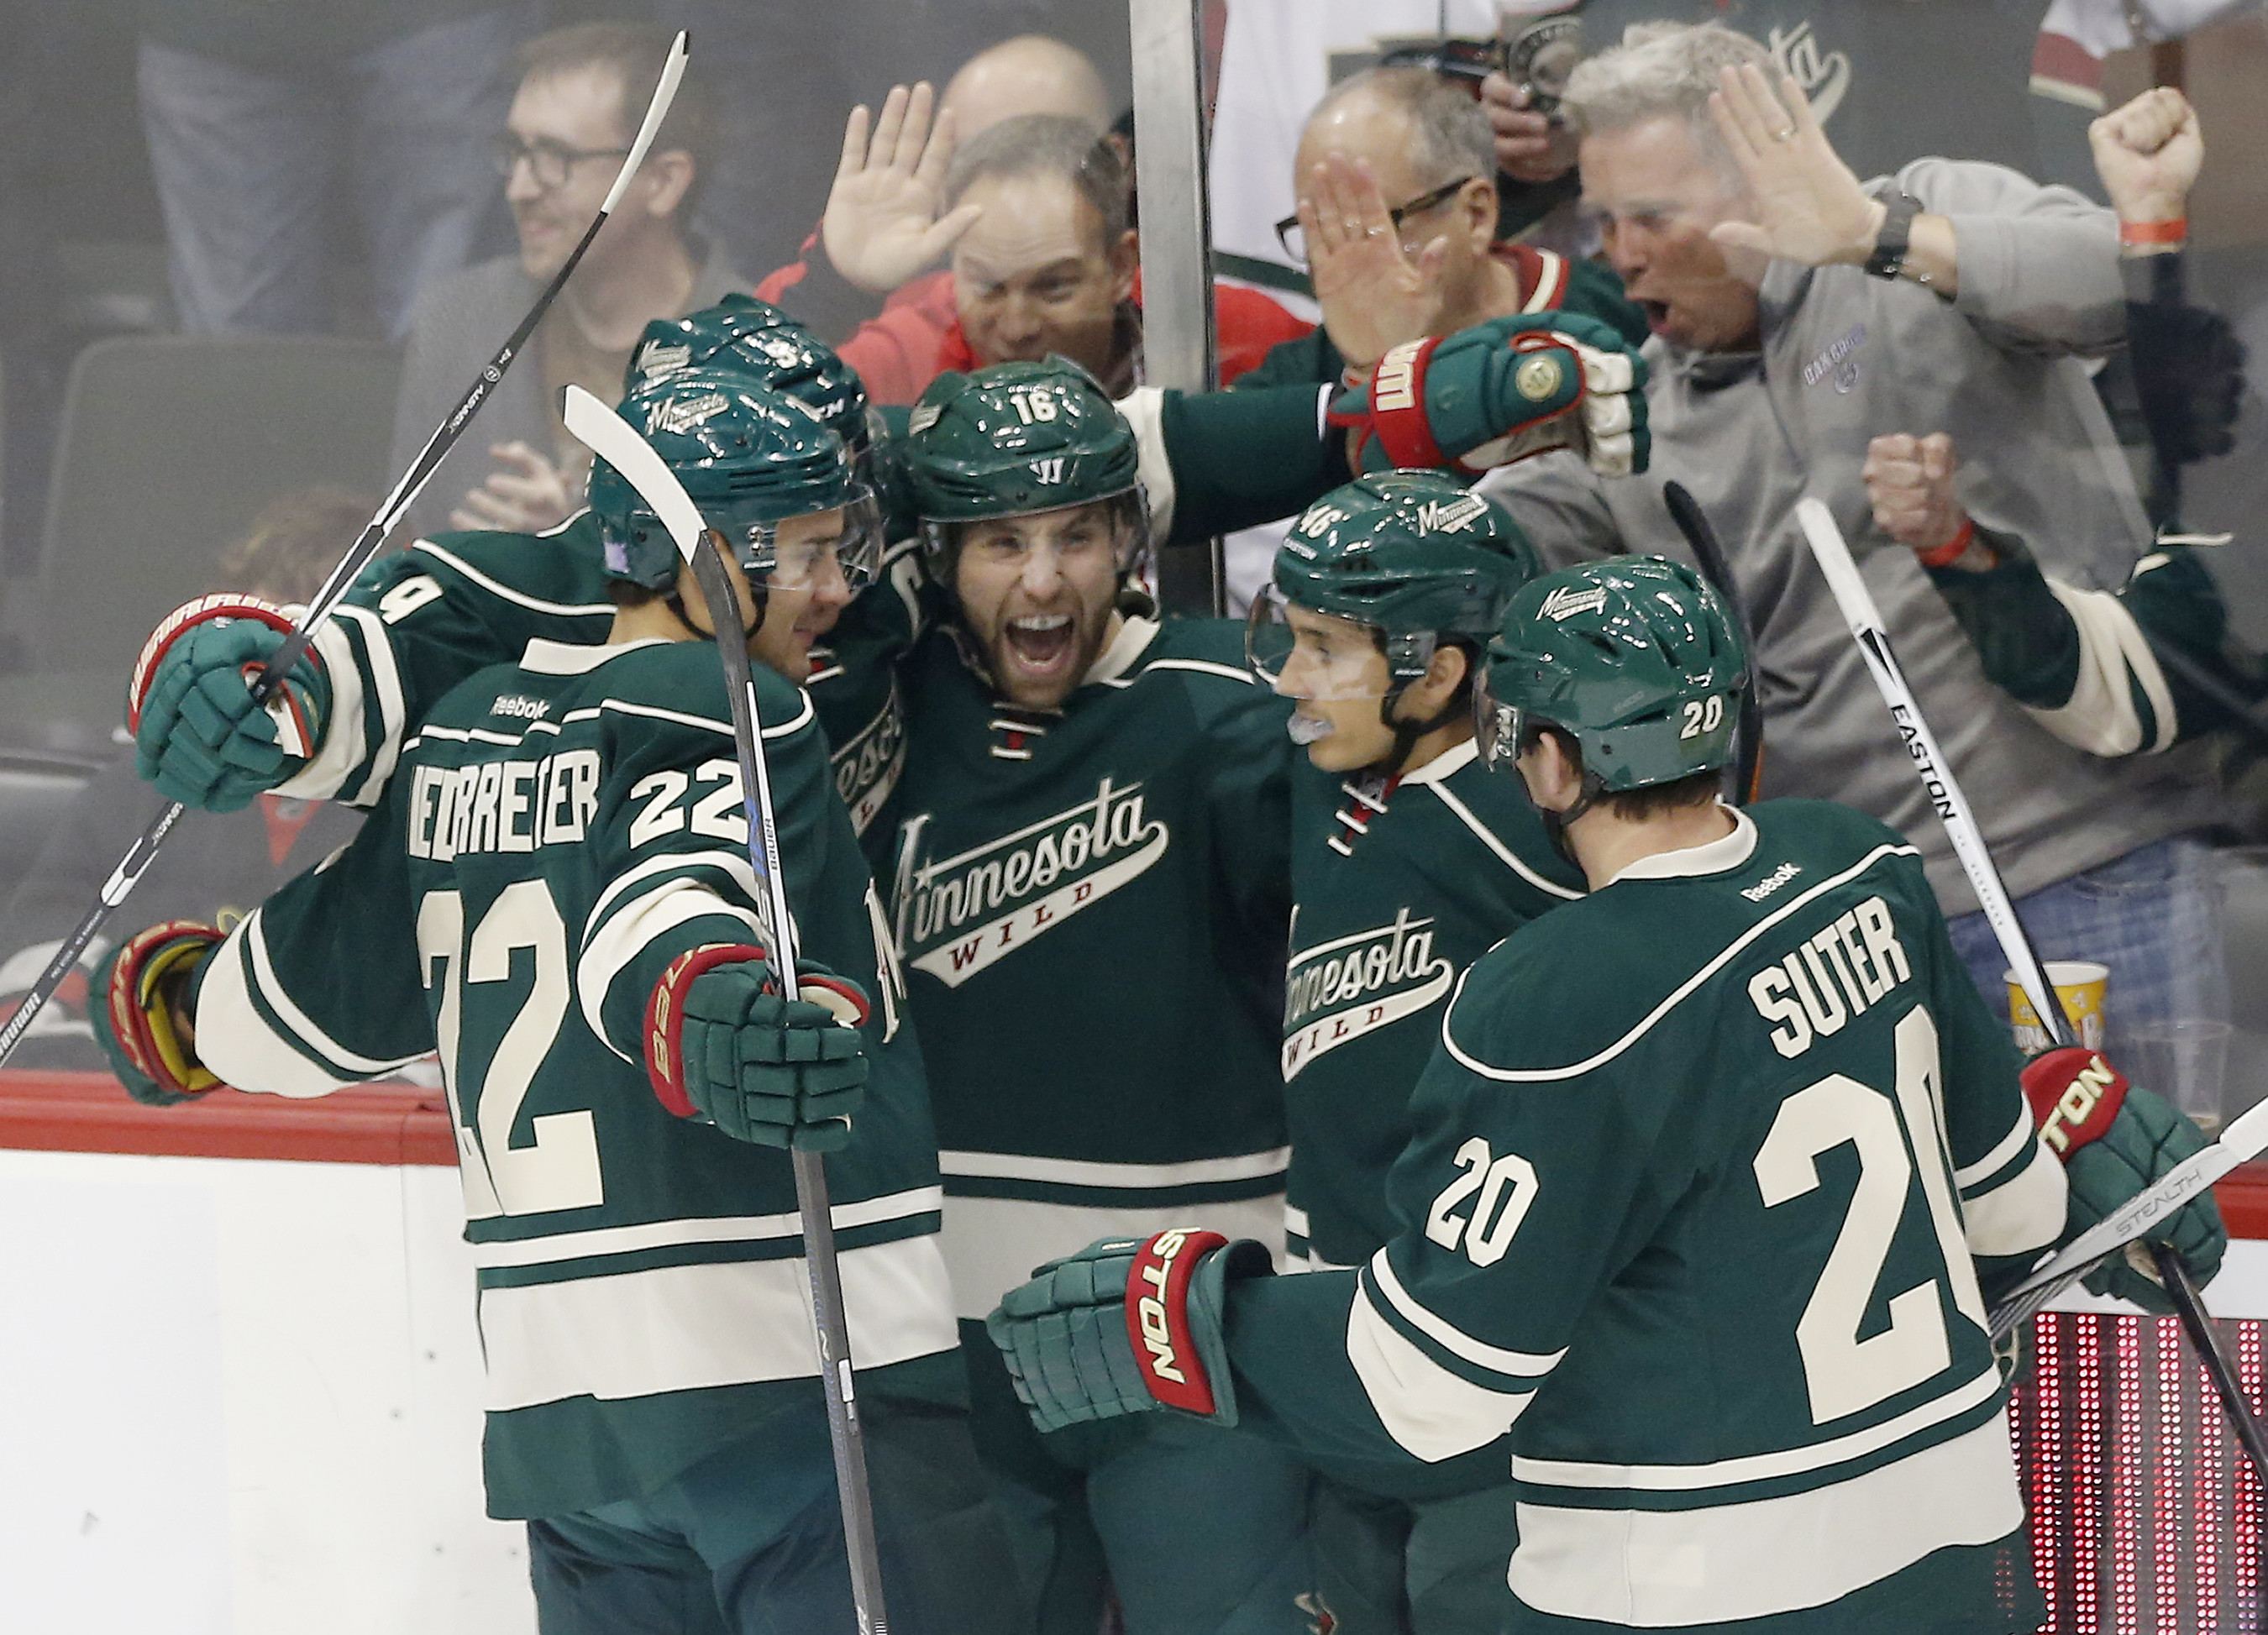 Minnesota Wild's Jason Zucker, second from left, celebrates with teammates after his goal off Chicago Blackhawks goalie Scott Darling in the first period of an NHL hockey game, Friday, Oct. 30, 2015, in St. Paul, Minn. (AP Photo/Jim Mone)